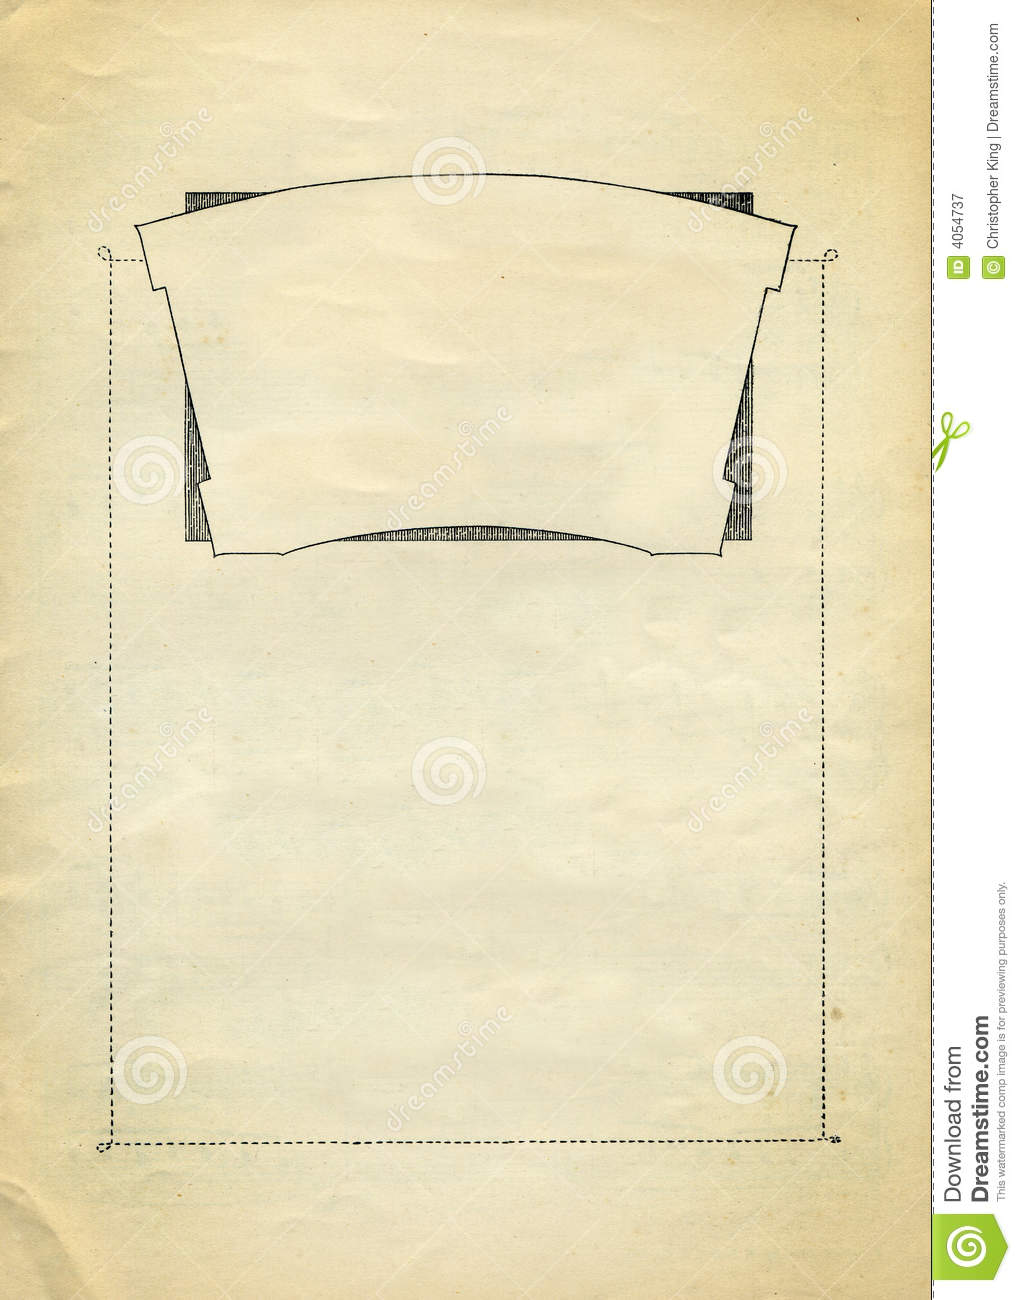 Vintage Decorative border Design with clear panels to add your own ...